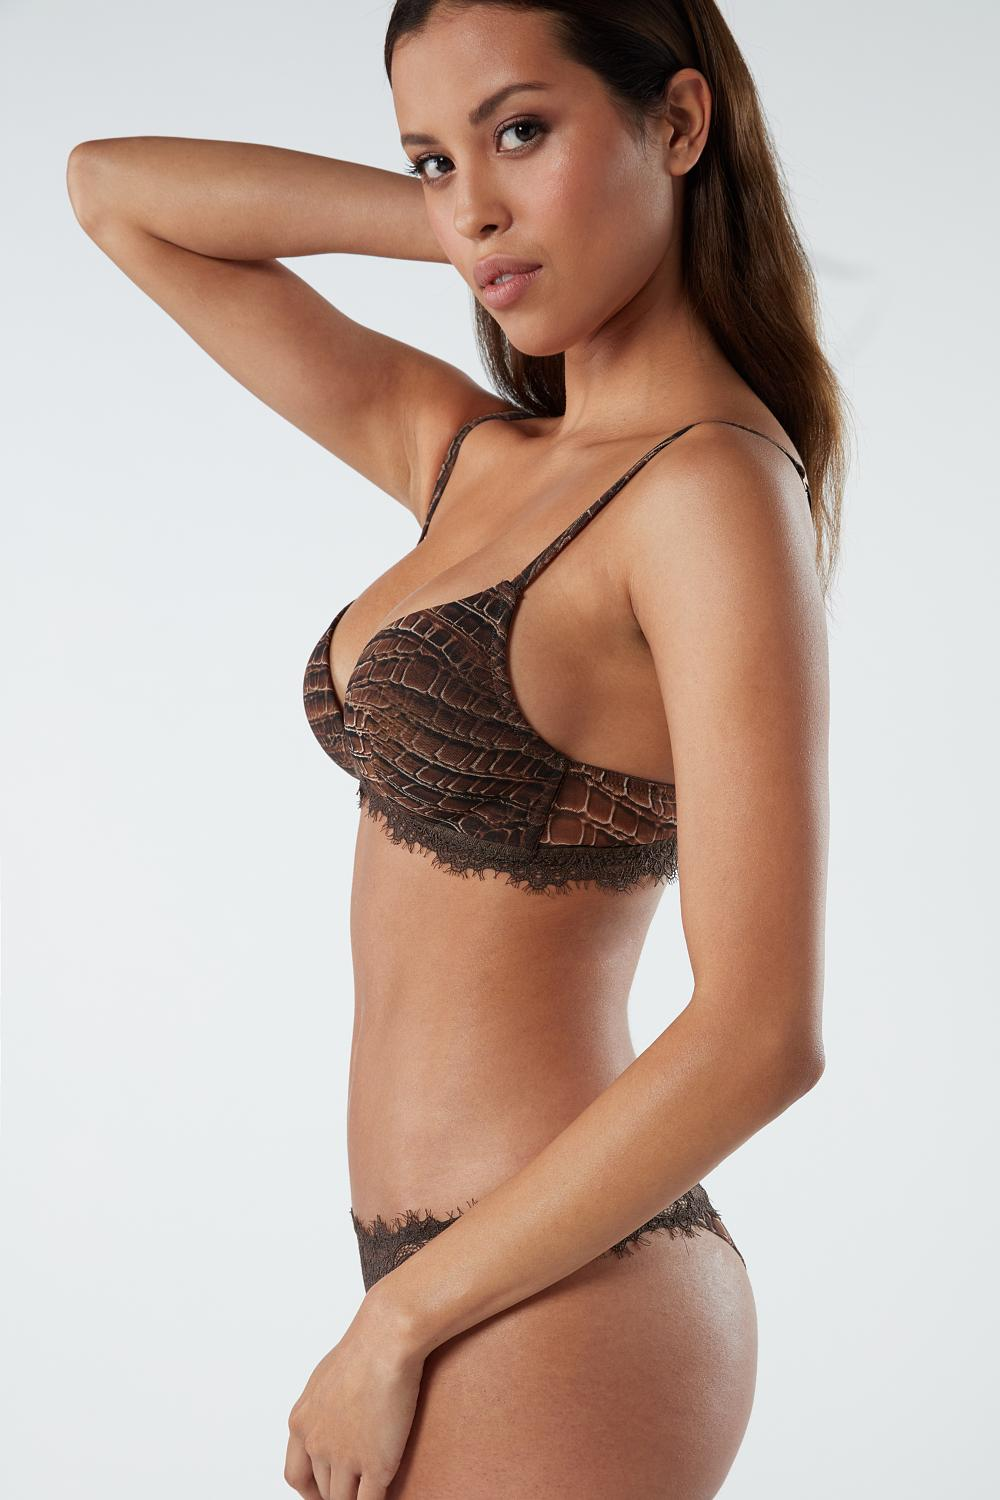 Tiziana Lady Crocodile Triangle Bra